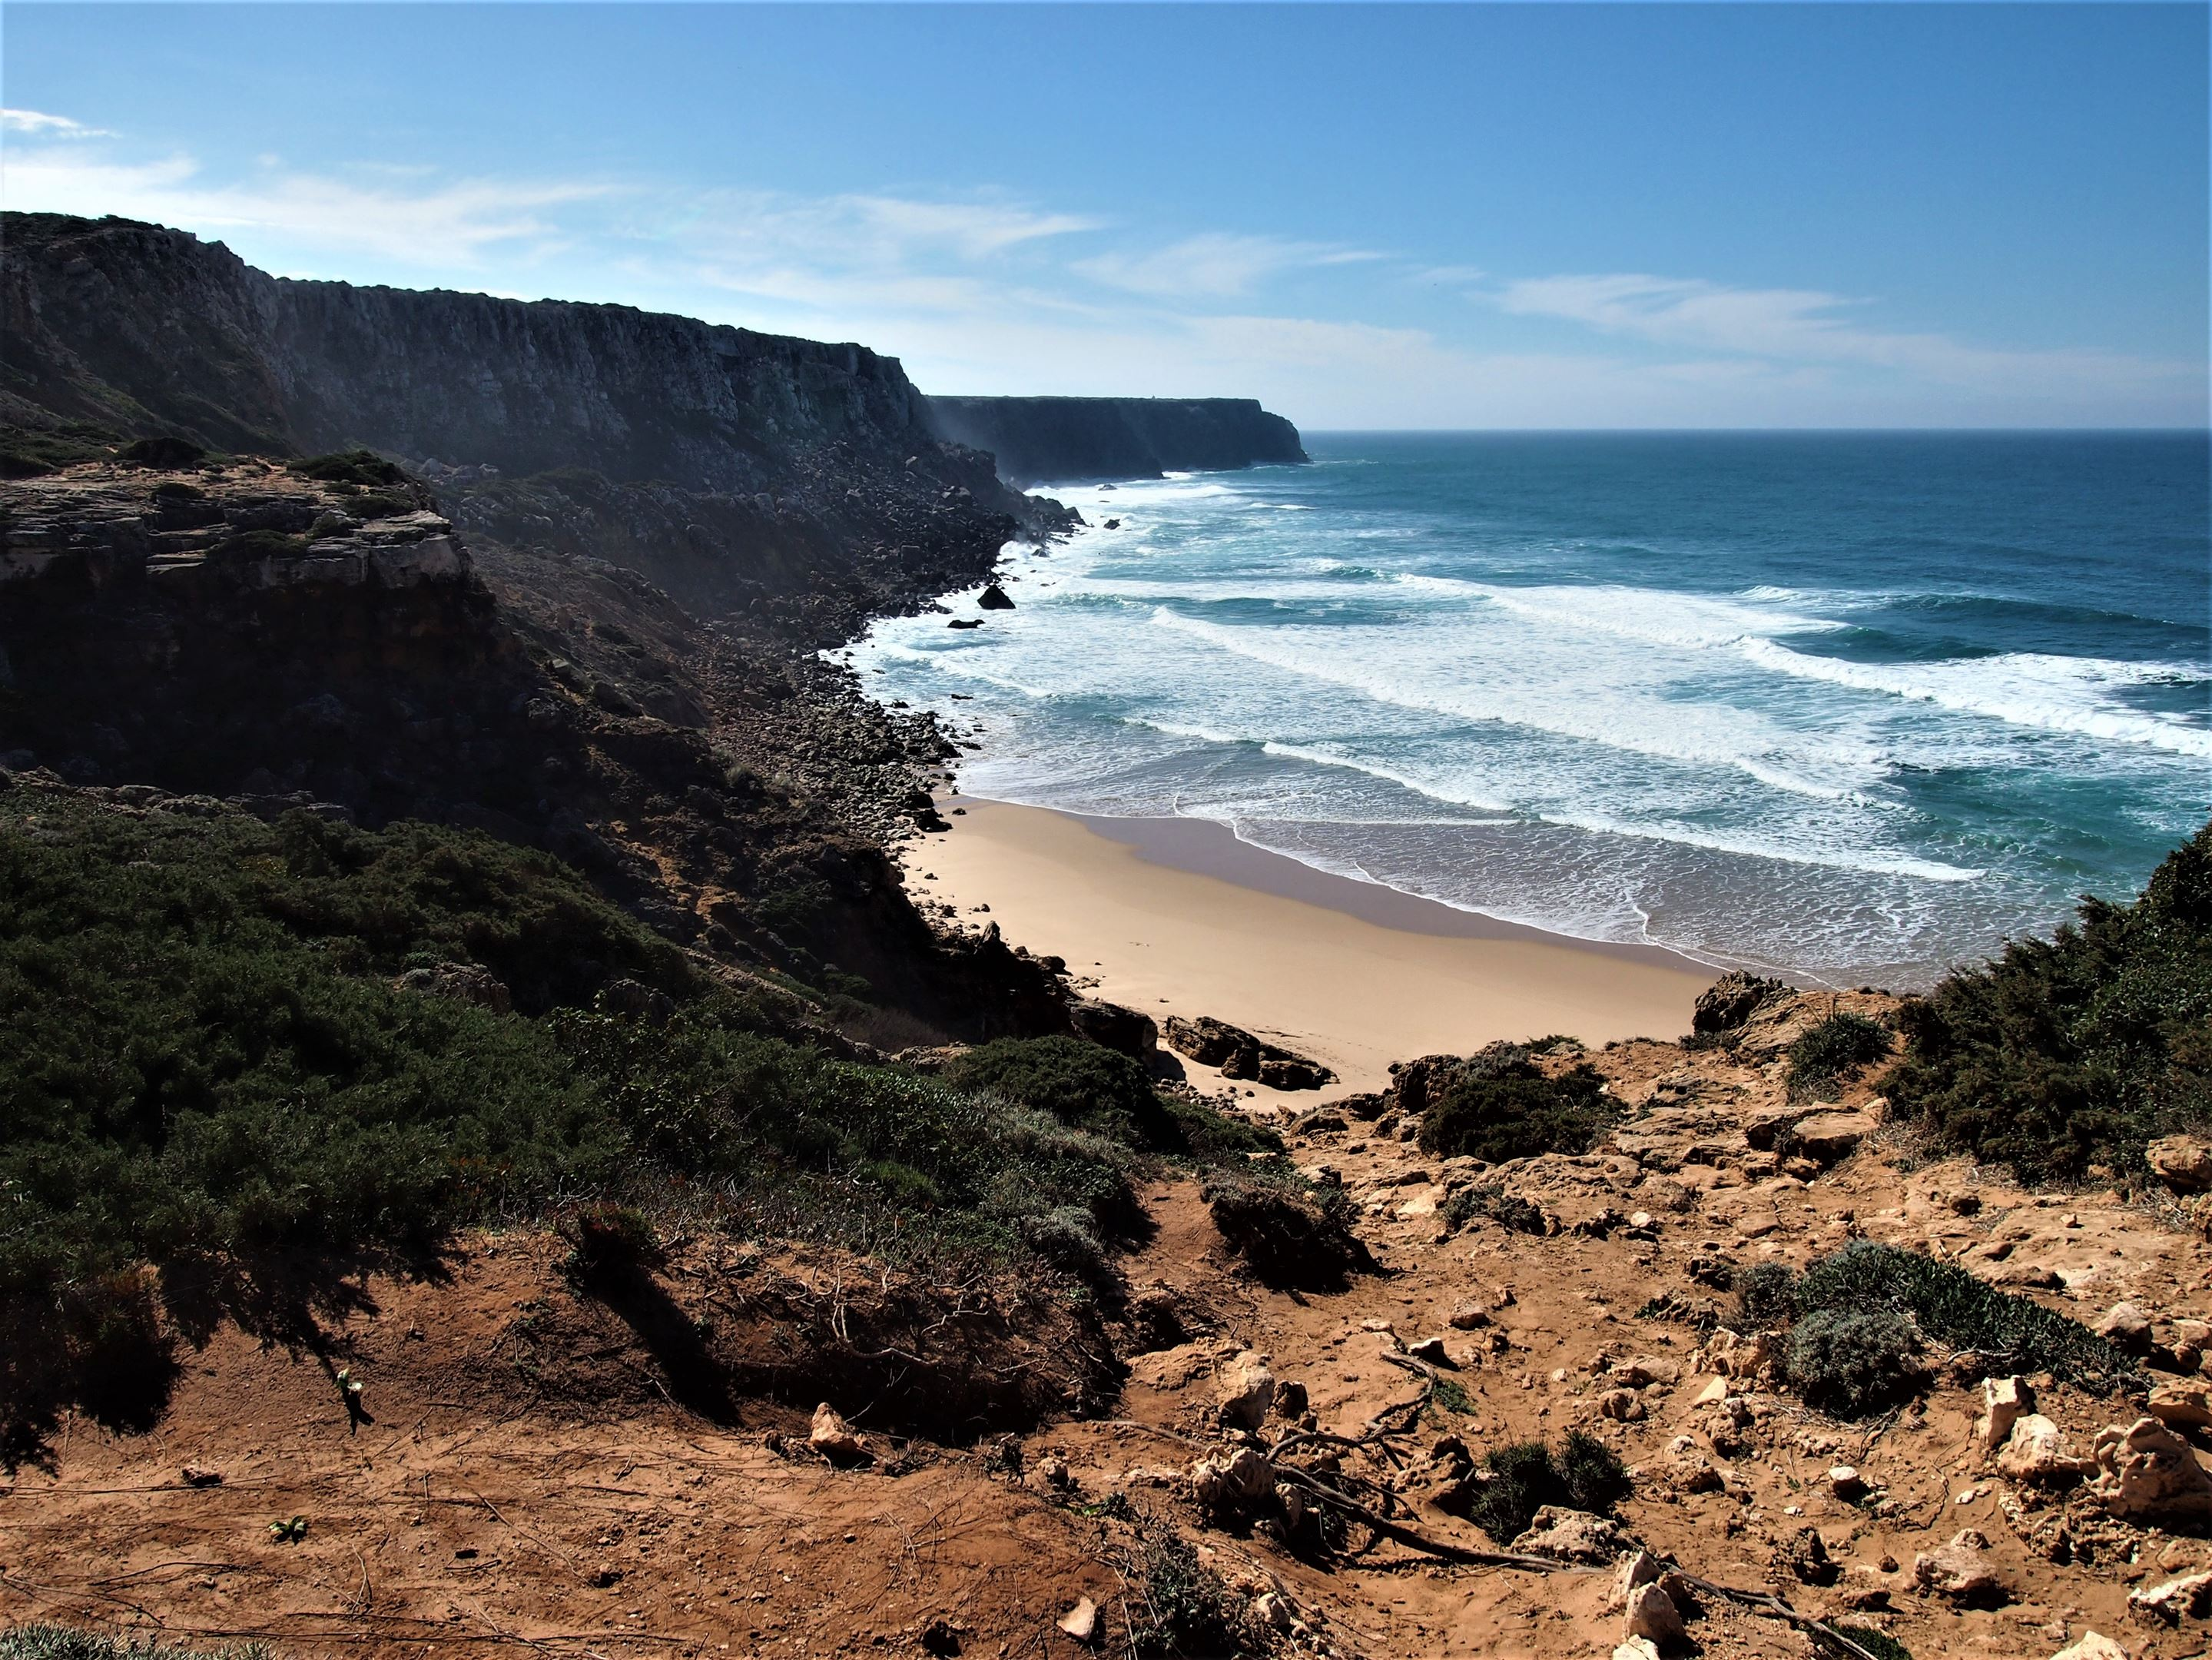 Praia do Telheiro, Algarve. Not the easiest beach to get to, but well worth the drive across the dirt track